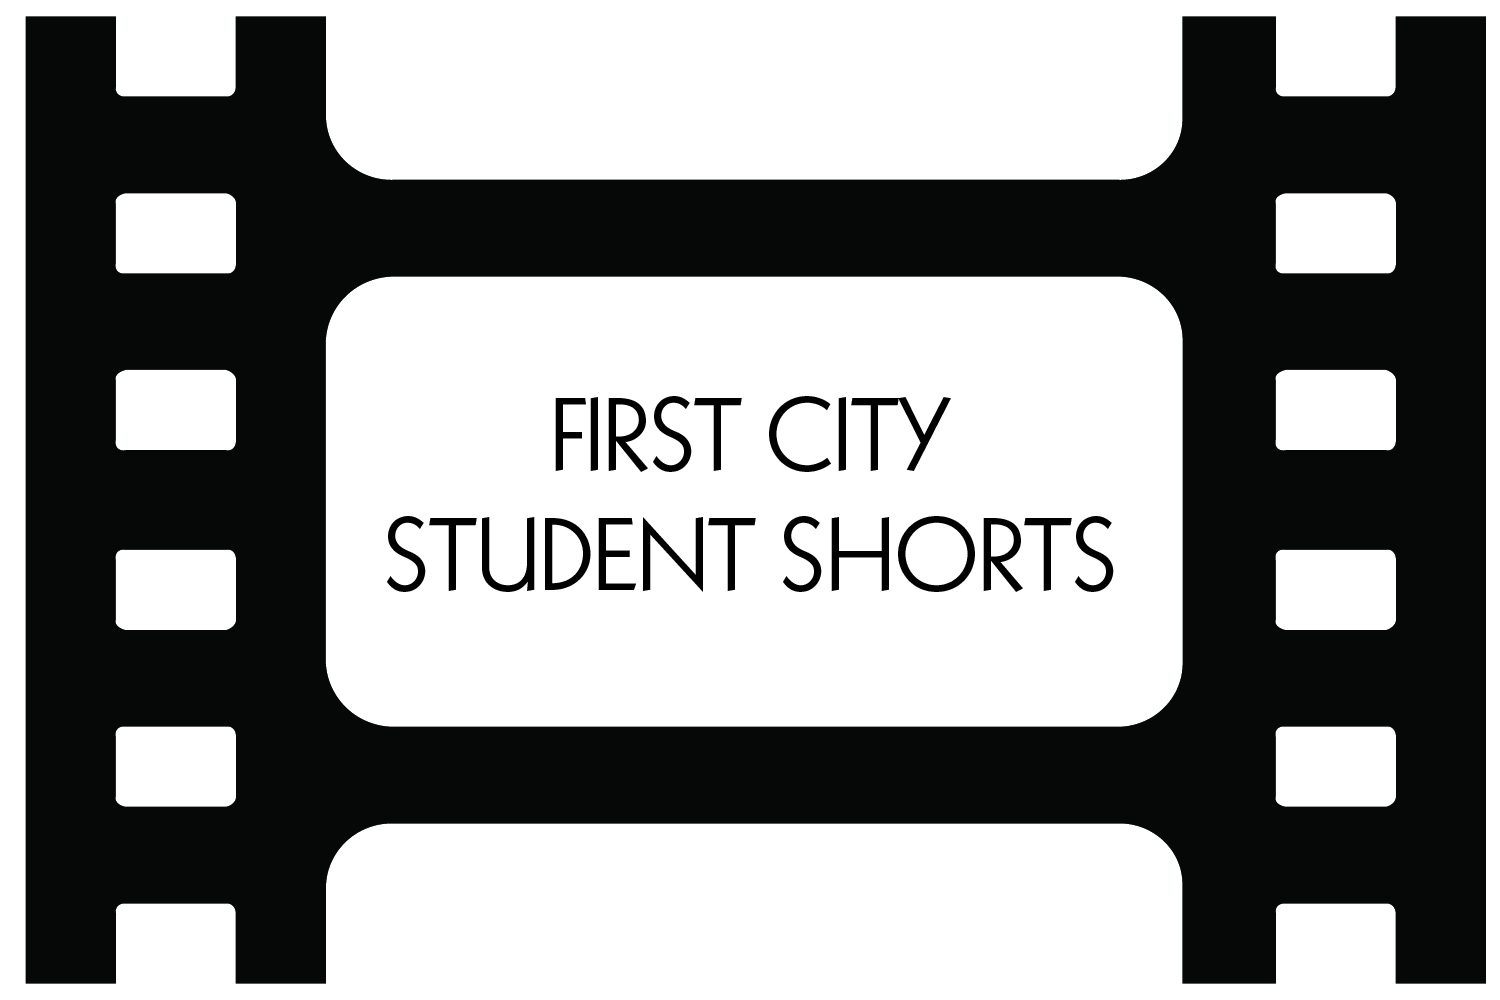 First City Student Shorts Screening and Awards - TownePlace Suites Meeting Room1001 N 4th St, Leavenworth, KS 66048**Tickets are not required to attend this event6 p.m. - Special Screening of a short film by C2D2 Films. C2D2 filmmakers and First City Student Shorts judges, Davis DeRock and Chad Crenshaw, will be on hand for the screening.6:15 p.m. - First City Student Shorts and AwardsPut the Brake on Fatalities by Hunter Hotaling, Lansing High SchoolDate? by Griffin Rogers, Leavenworth High SchoolThe High School Experience by Hunter Hotaling, Lansing High SchoolWhite Brick Hotel by Hanaa Everett, Lansing High School